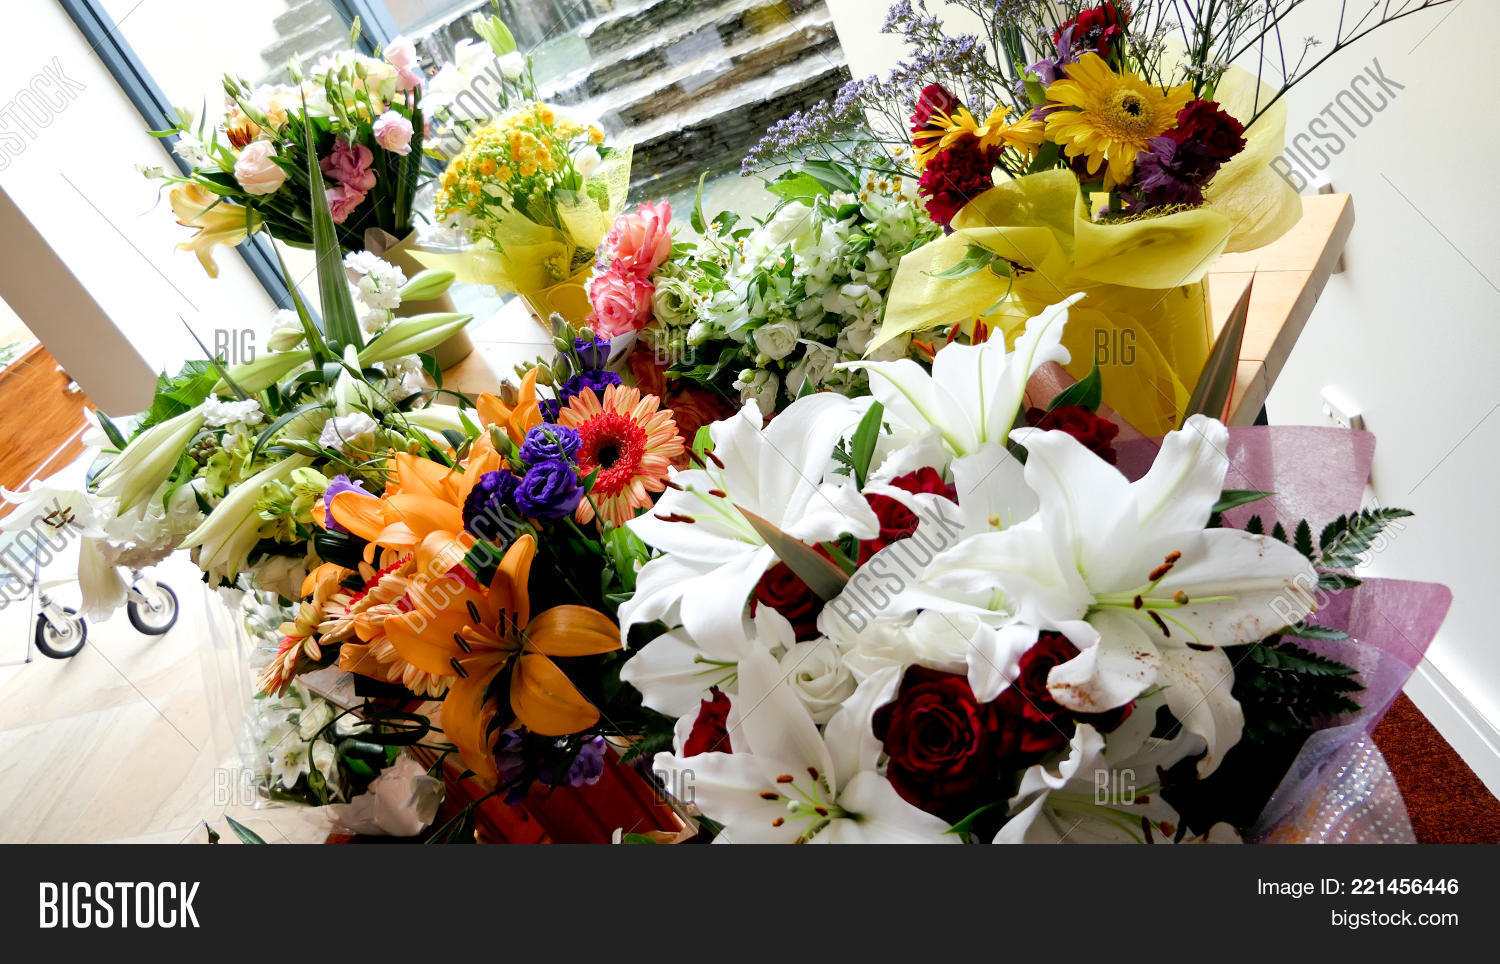 Shot Flower Candle Image Photo Free Trial Bigstock